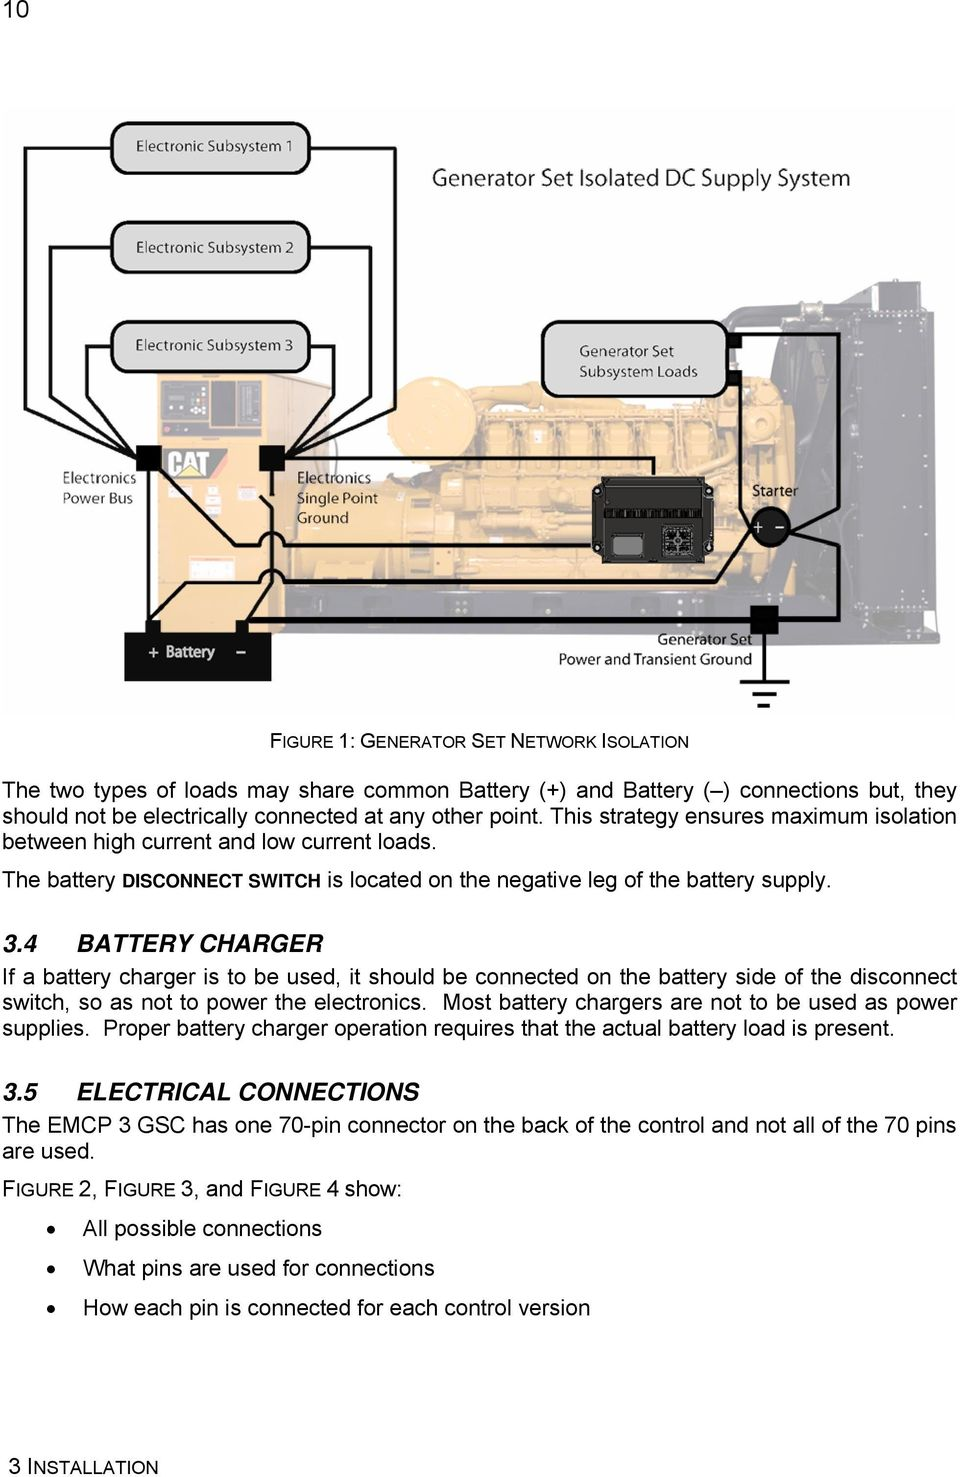 Emcp 31 32 33 Generator Set Control Pdf Cat 5 Cable Wiring Diagram Free Engine Image For User Manual